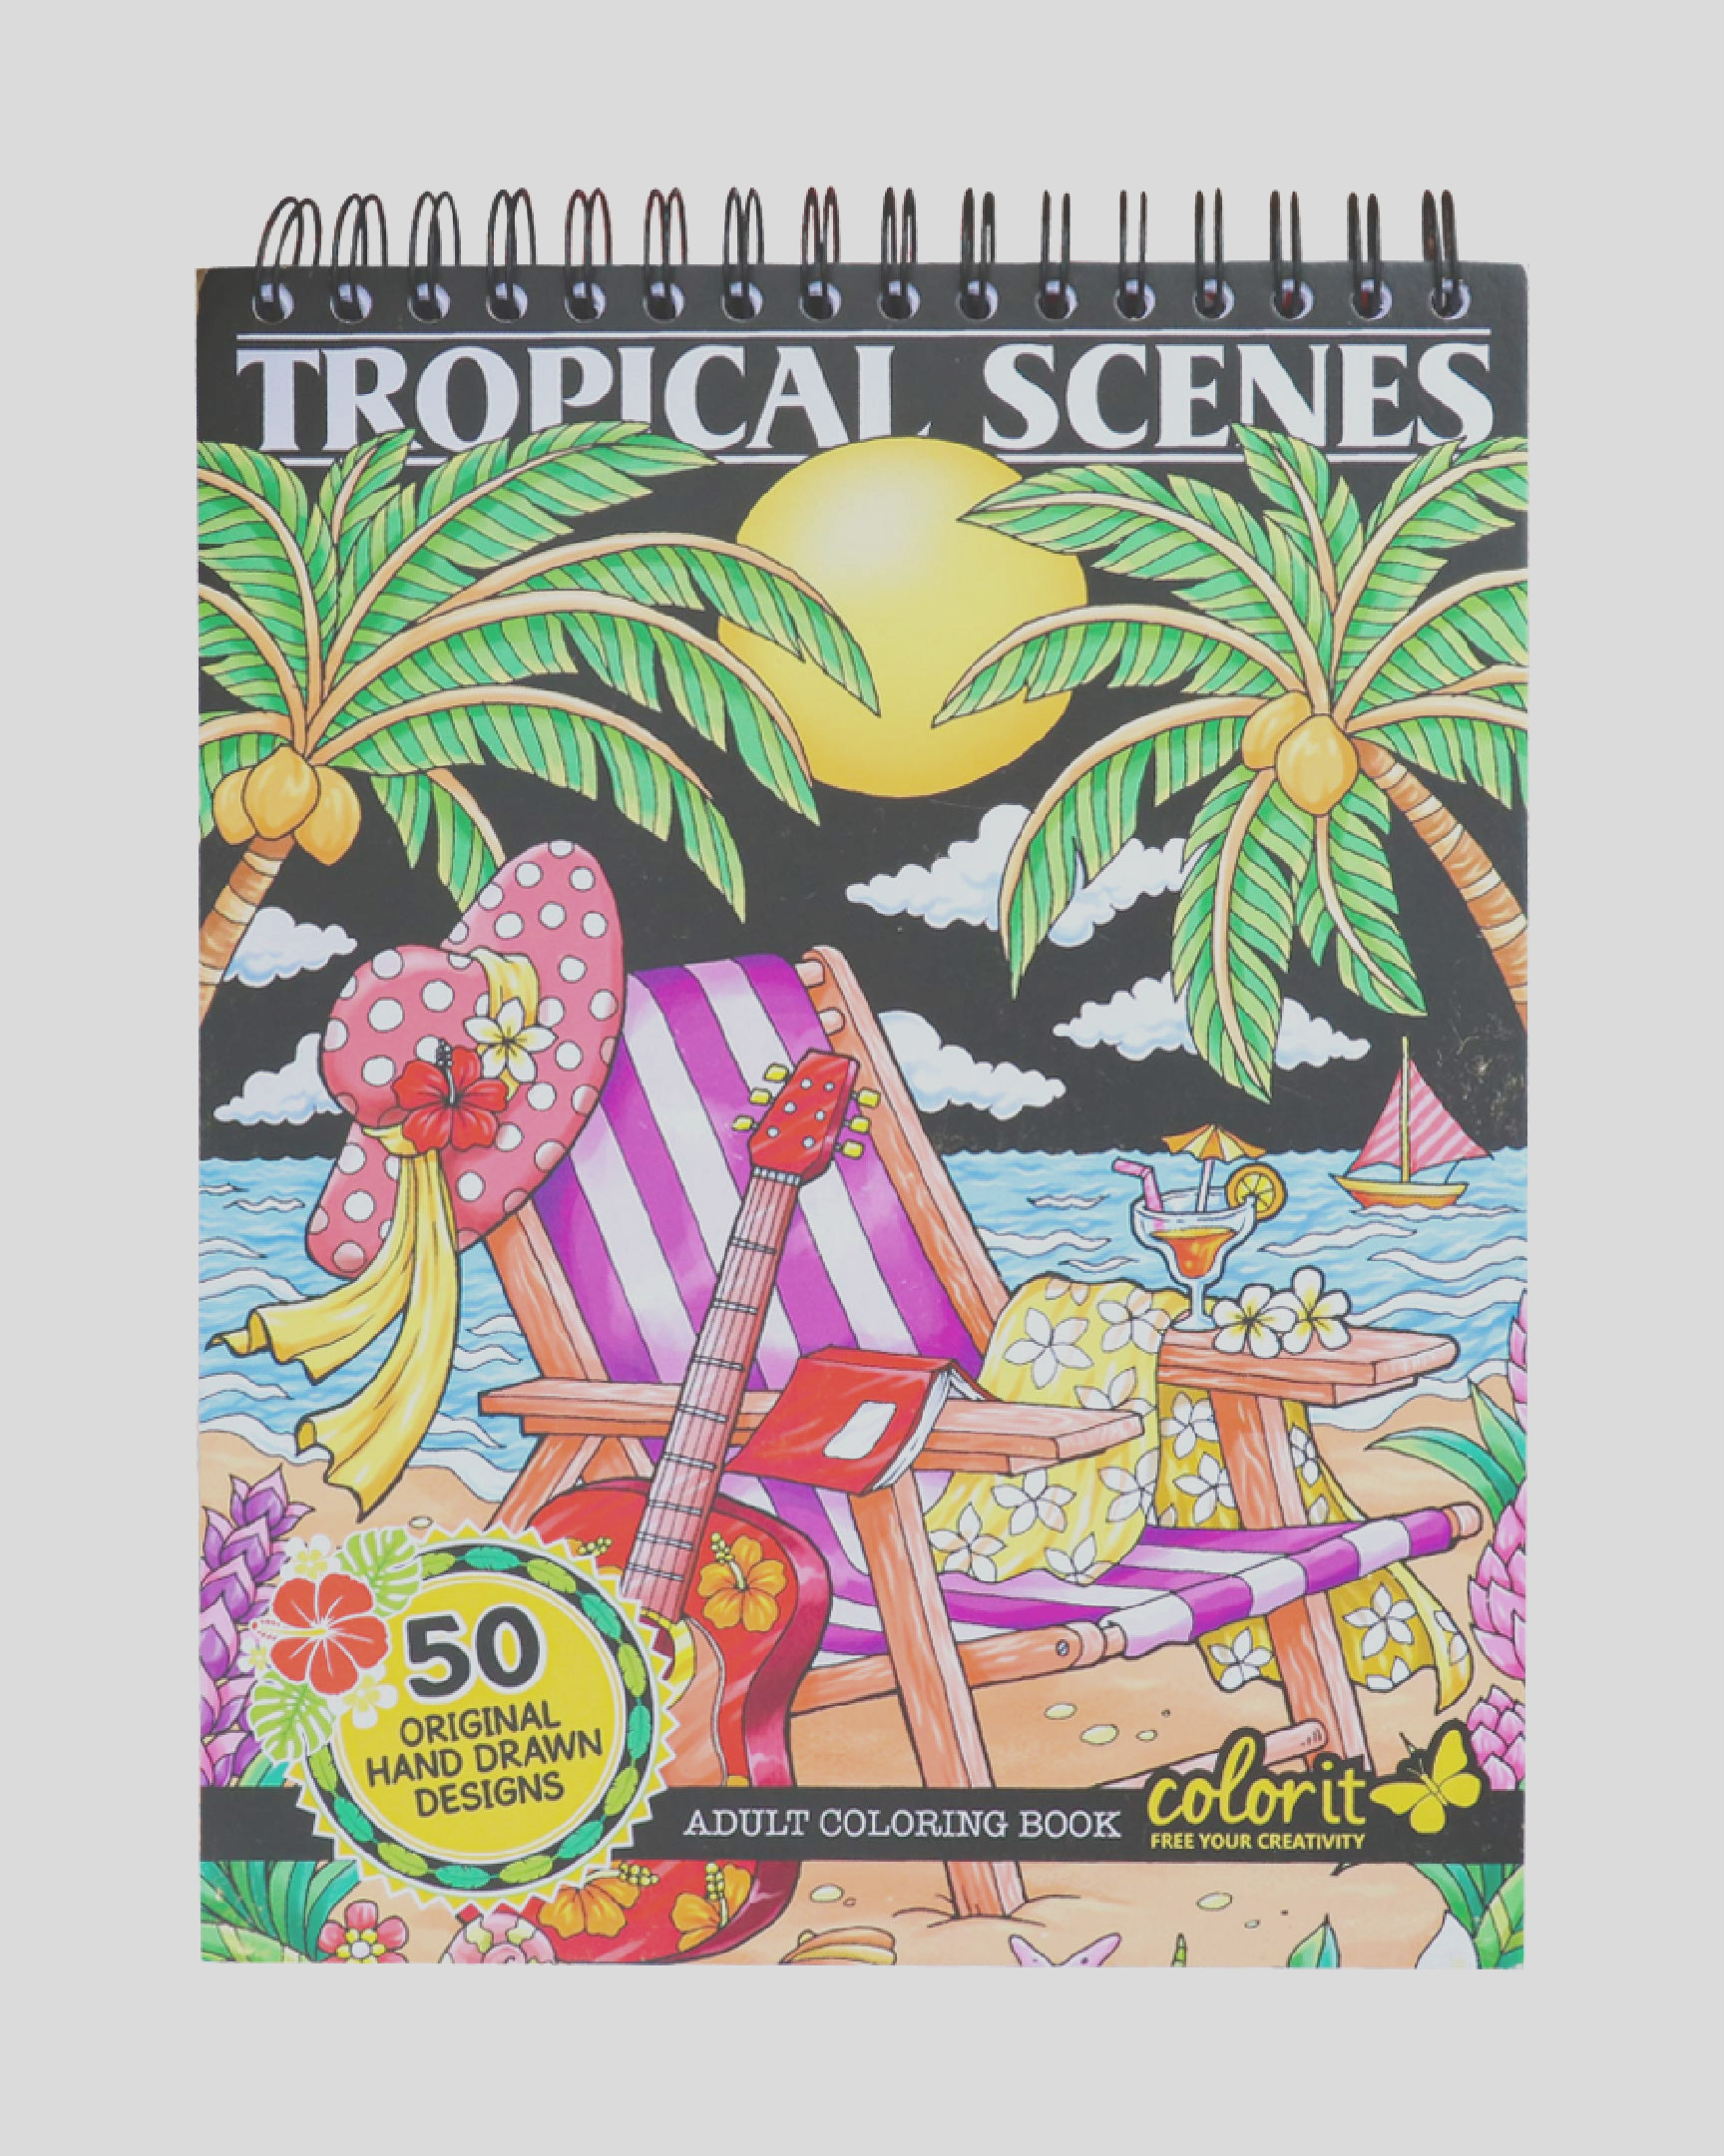 colorit colorful tropical scenes adult coloring book 50 single sided designs thick smooth paper lay flat hardback covers spiral bound